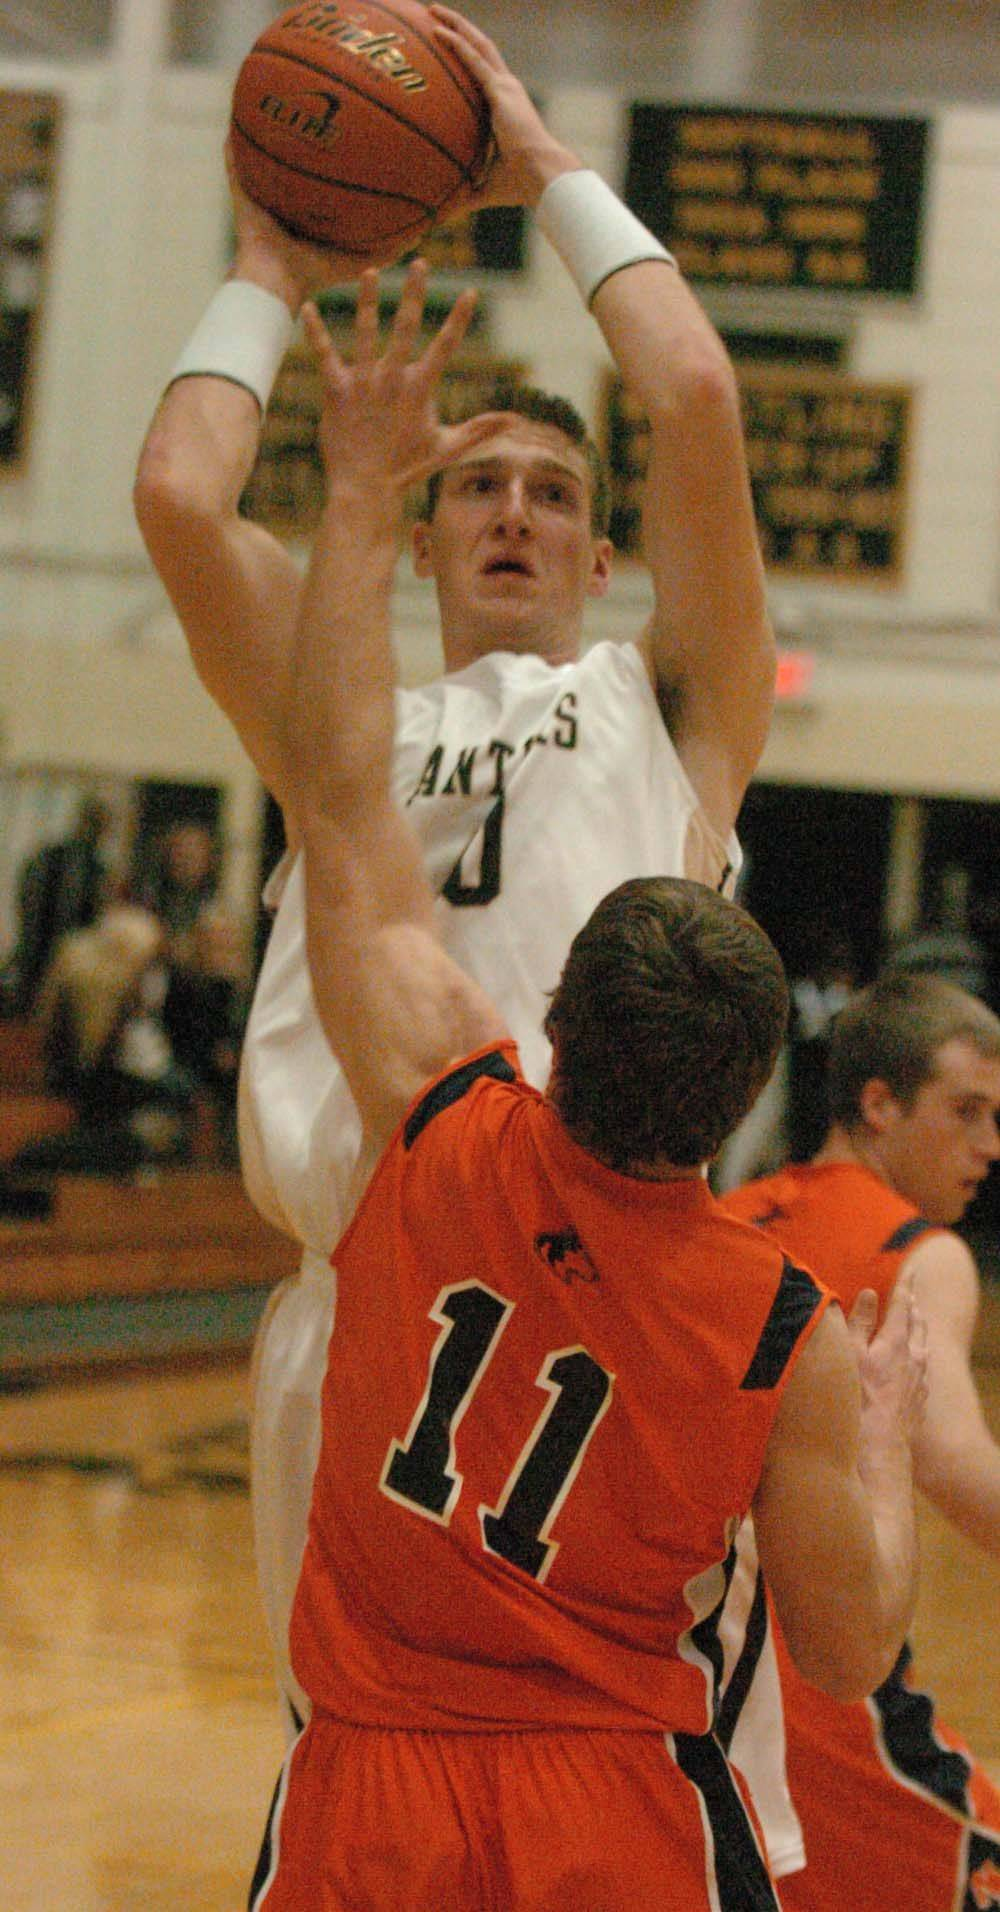 Matt Pemberton of Glenbard North goes up for a shot while Tim Davis of Naperville North tries to block.